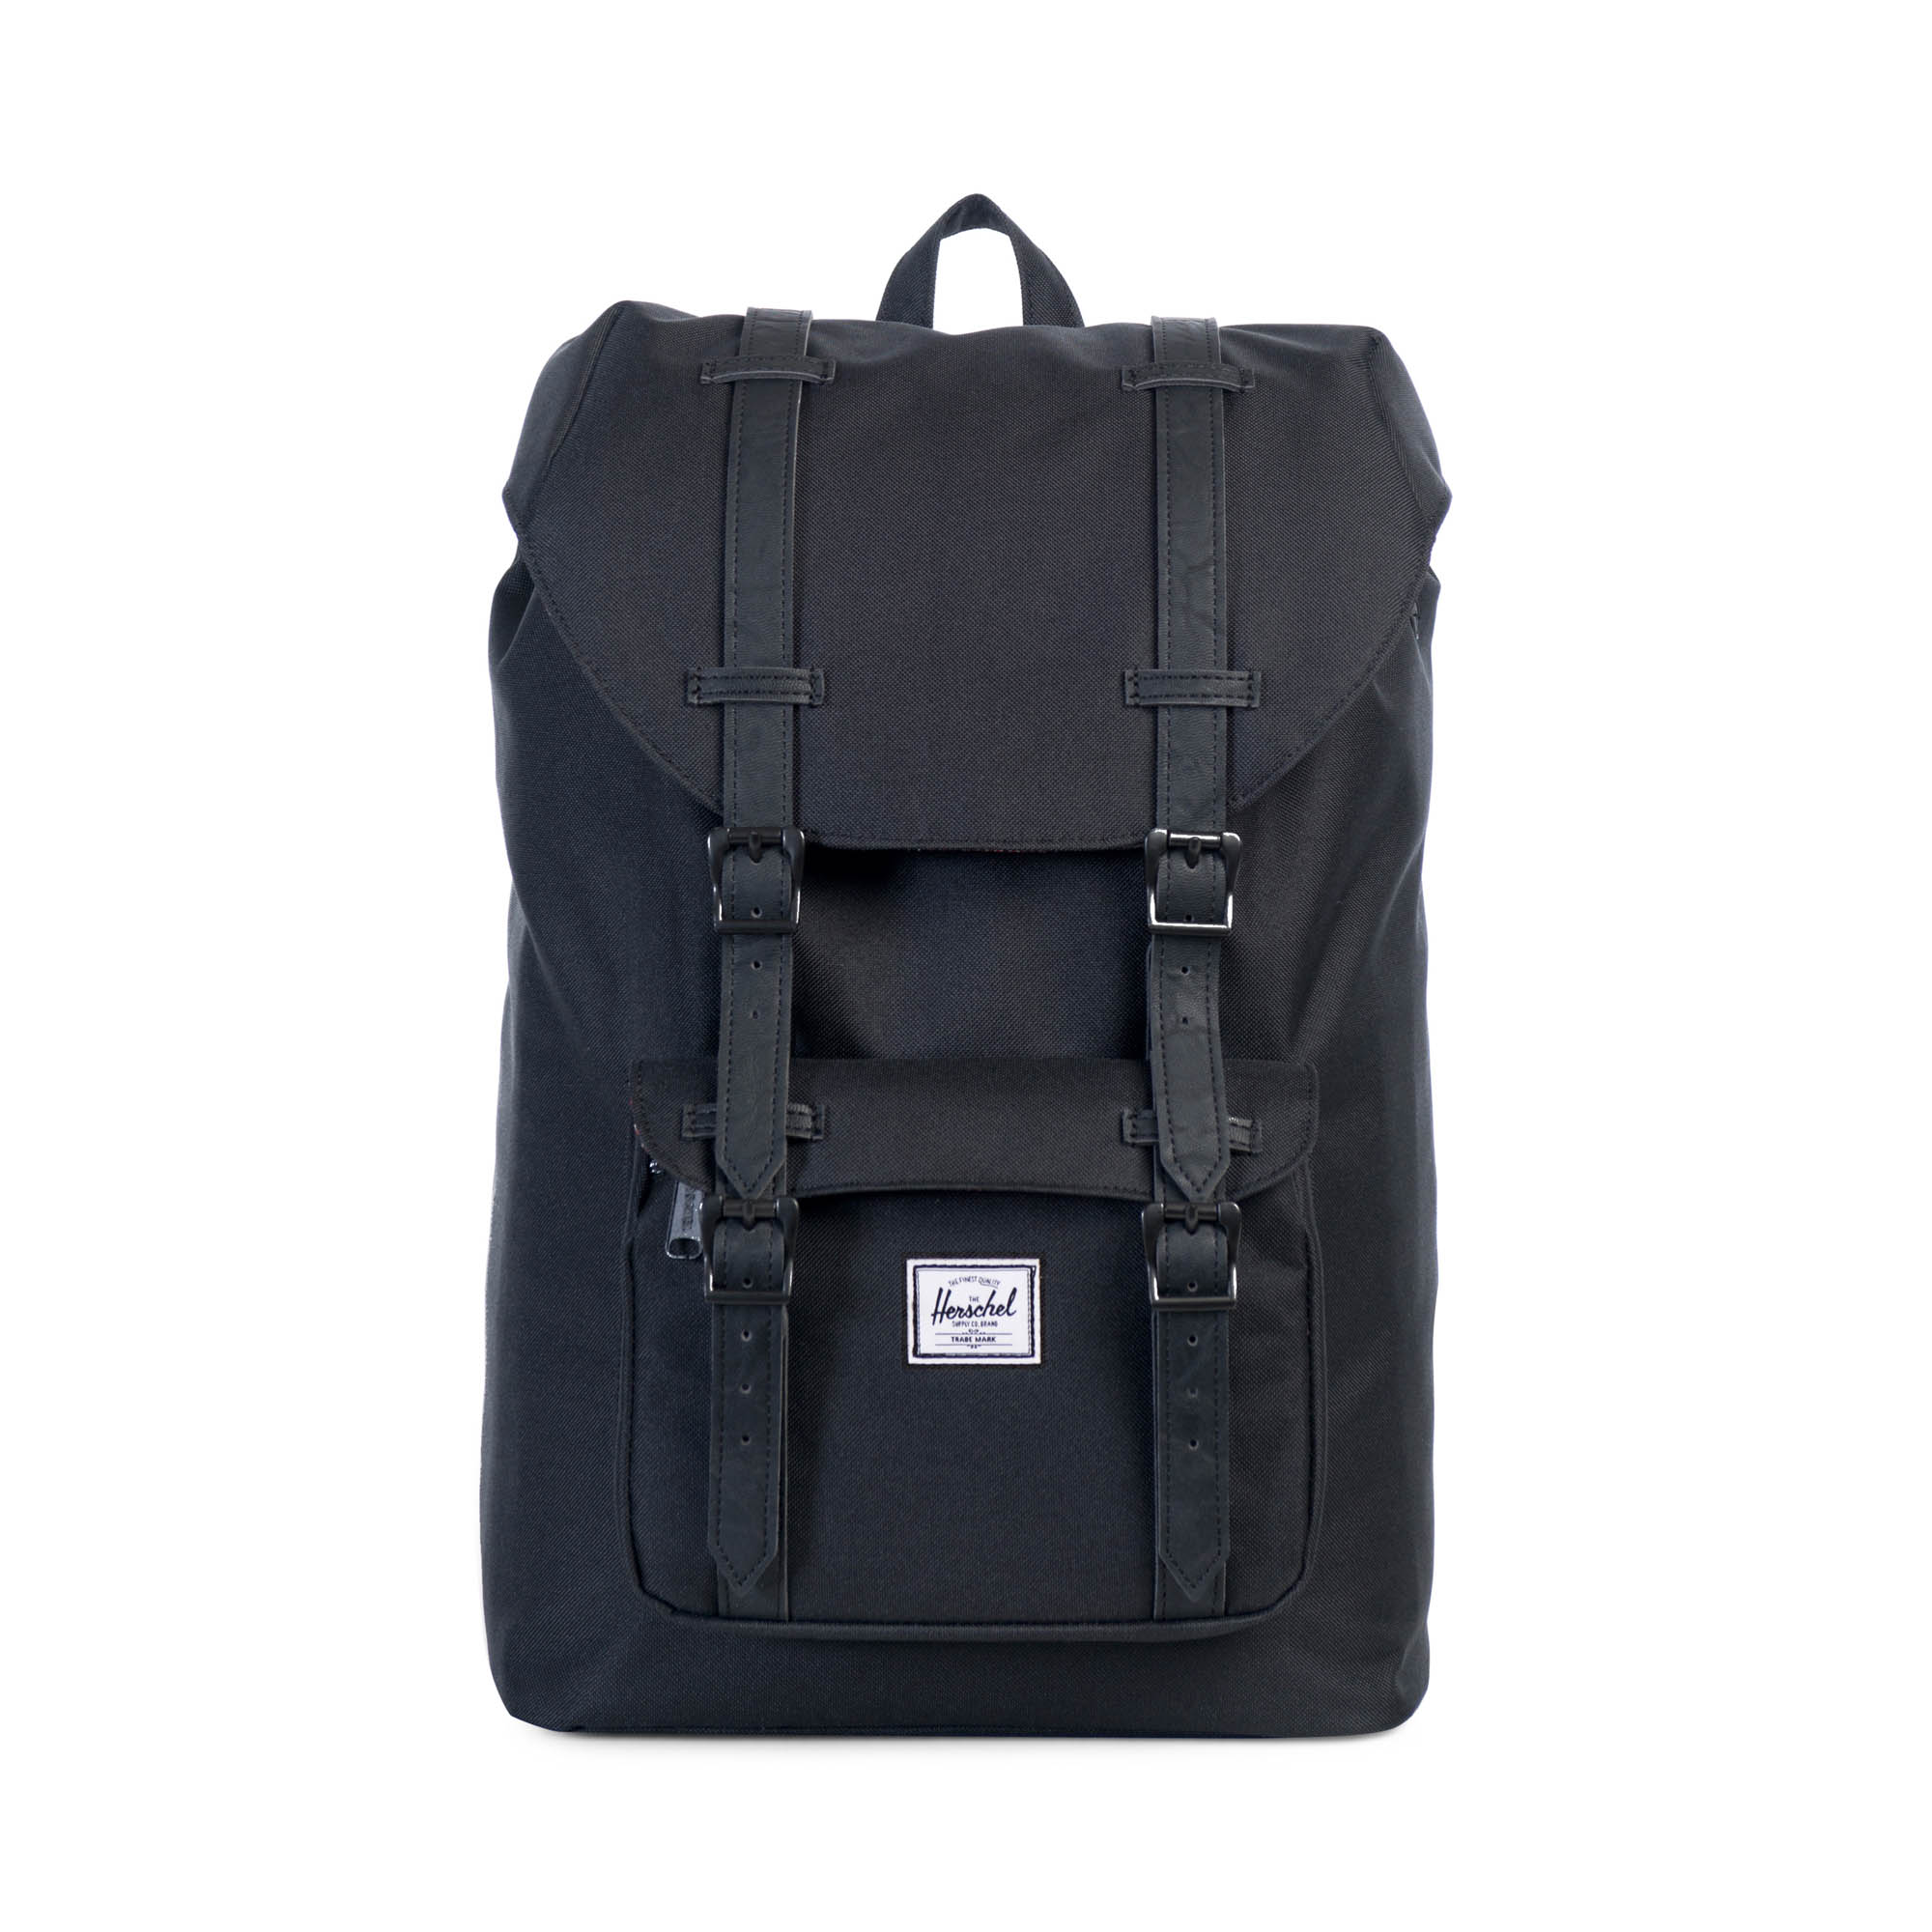 8952c907d8e Herschel Little America Backpack Mid-Volume